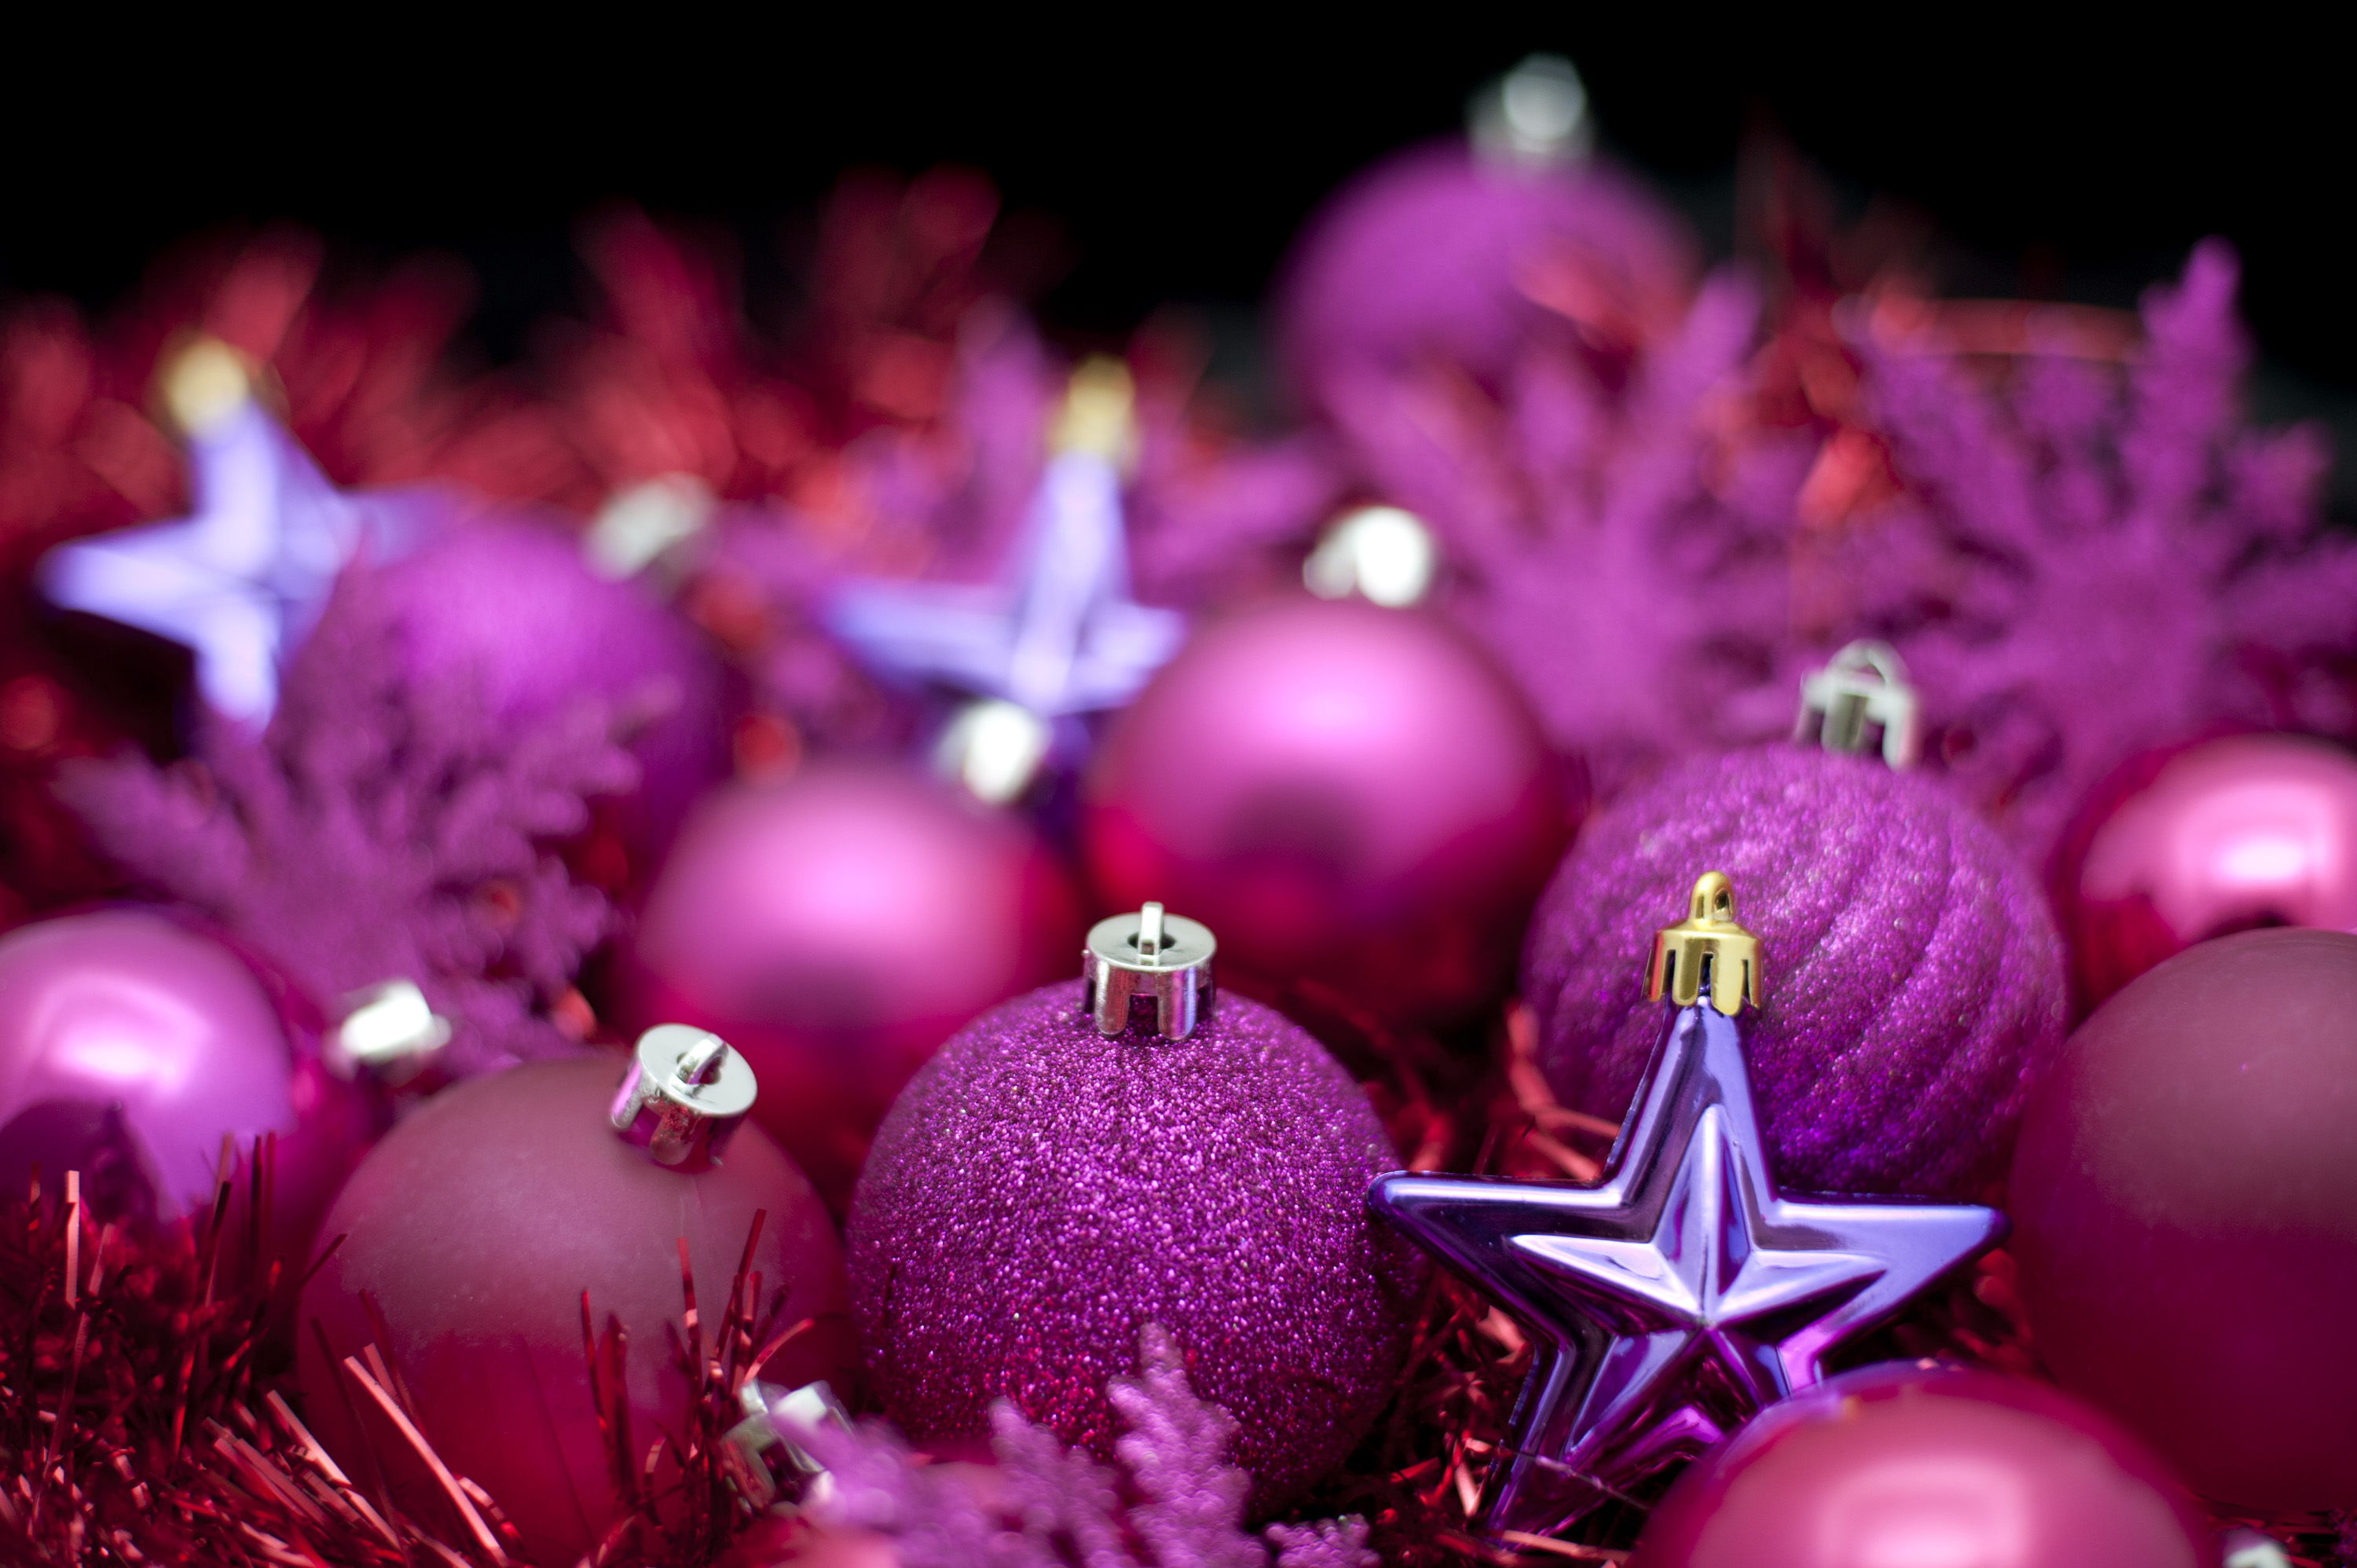 festive background of purple christmas decorations baubles and stars with shallow dof - Purple Christmas Decorations